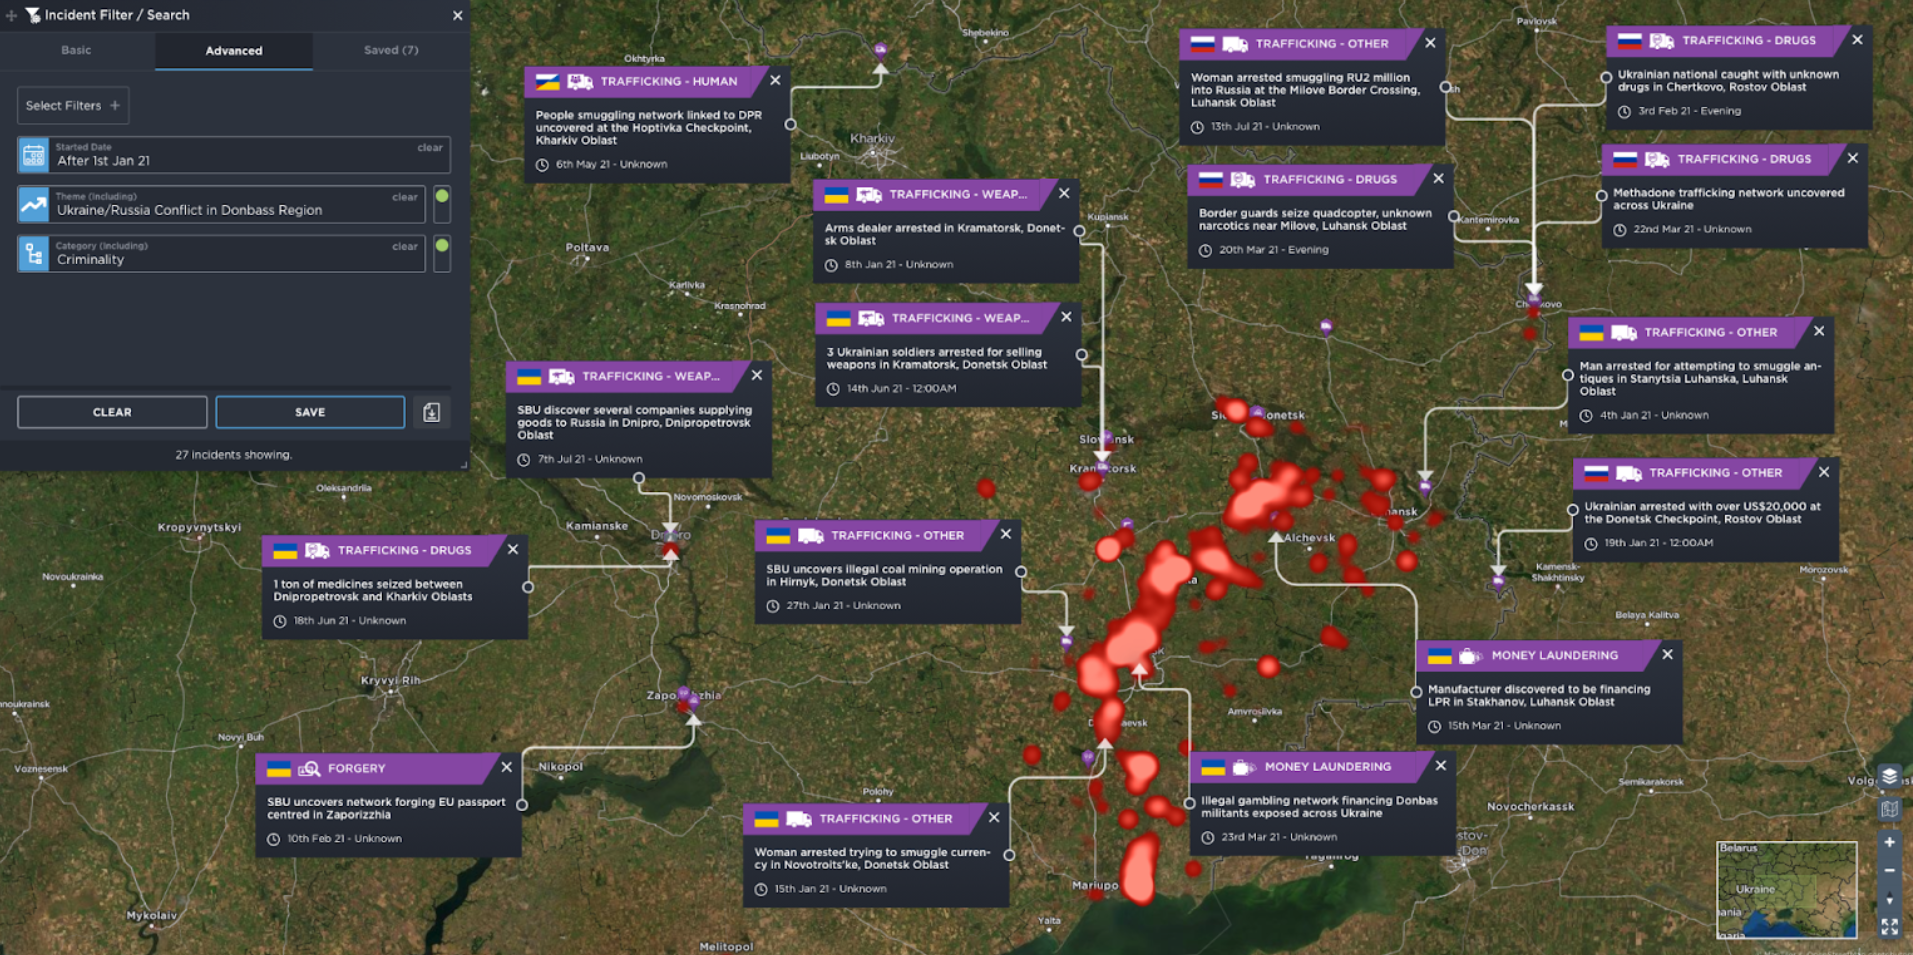 crime in ukraine russia war donbass conflict trafficking